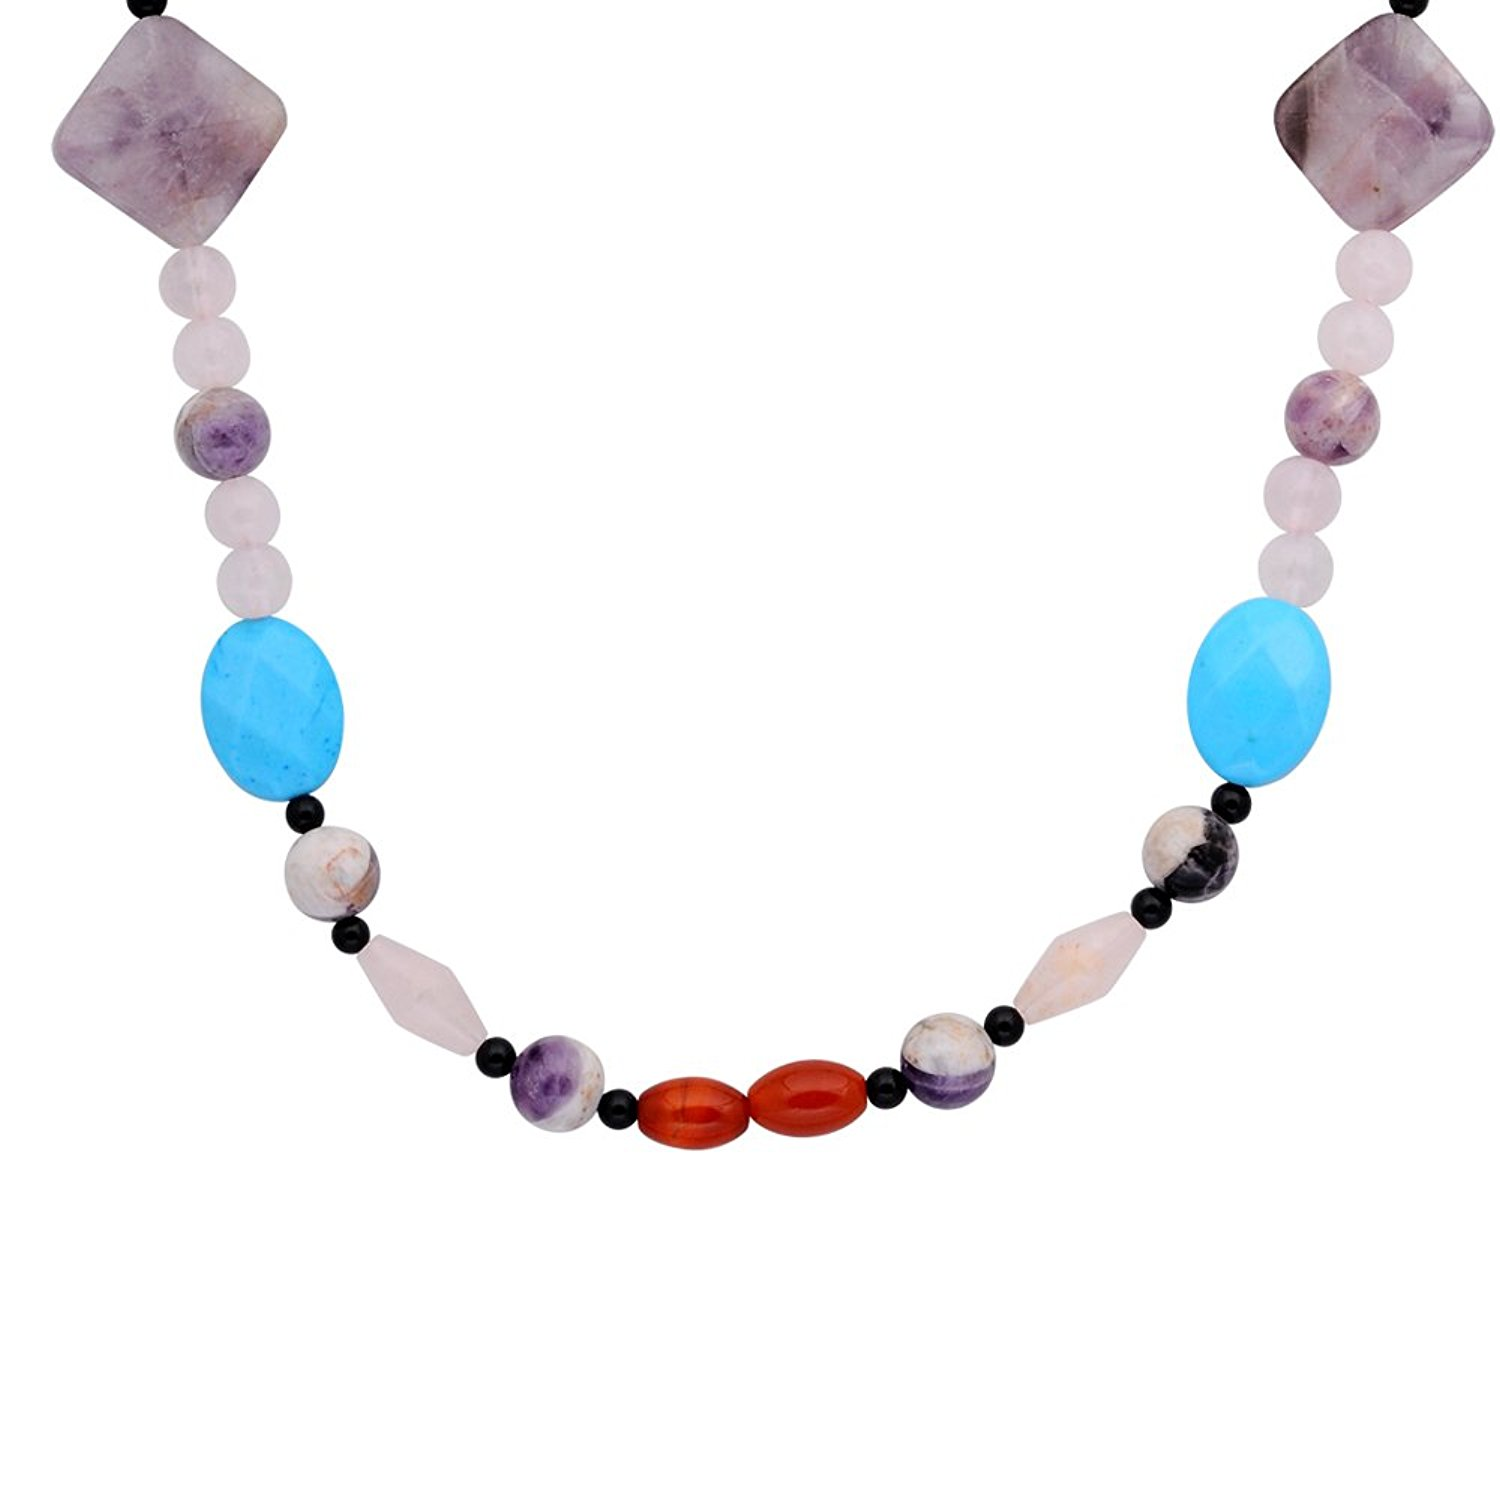 Orchid Jewelry Solid Sterling Silver Rose Quartz, Black Onyx, Turquoise, Amethyst Beaded Necklace